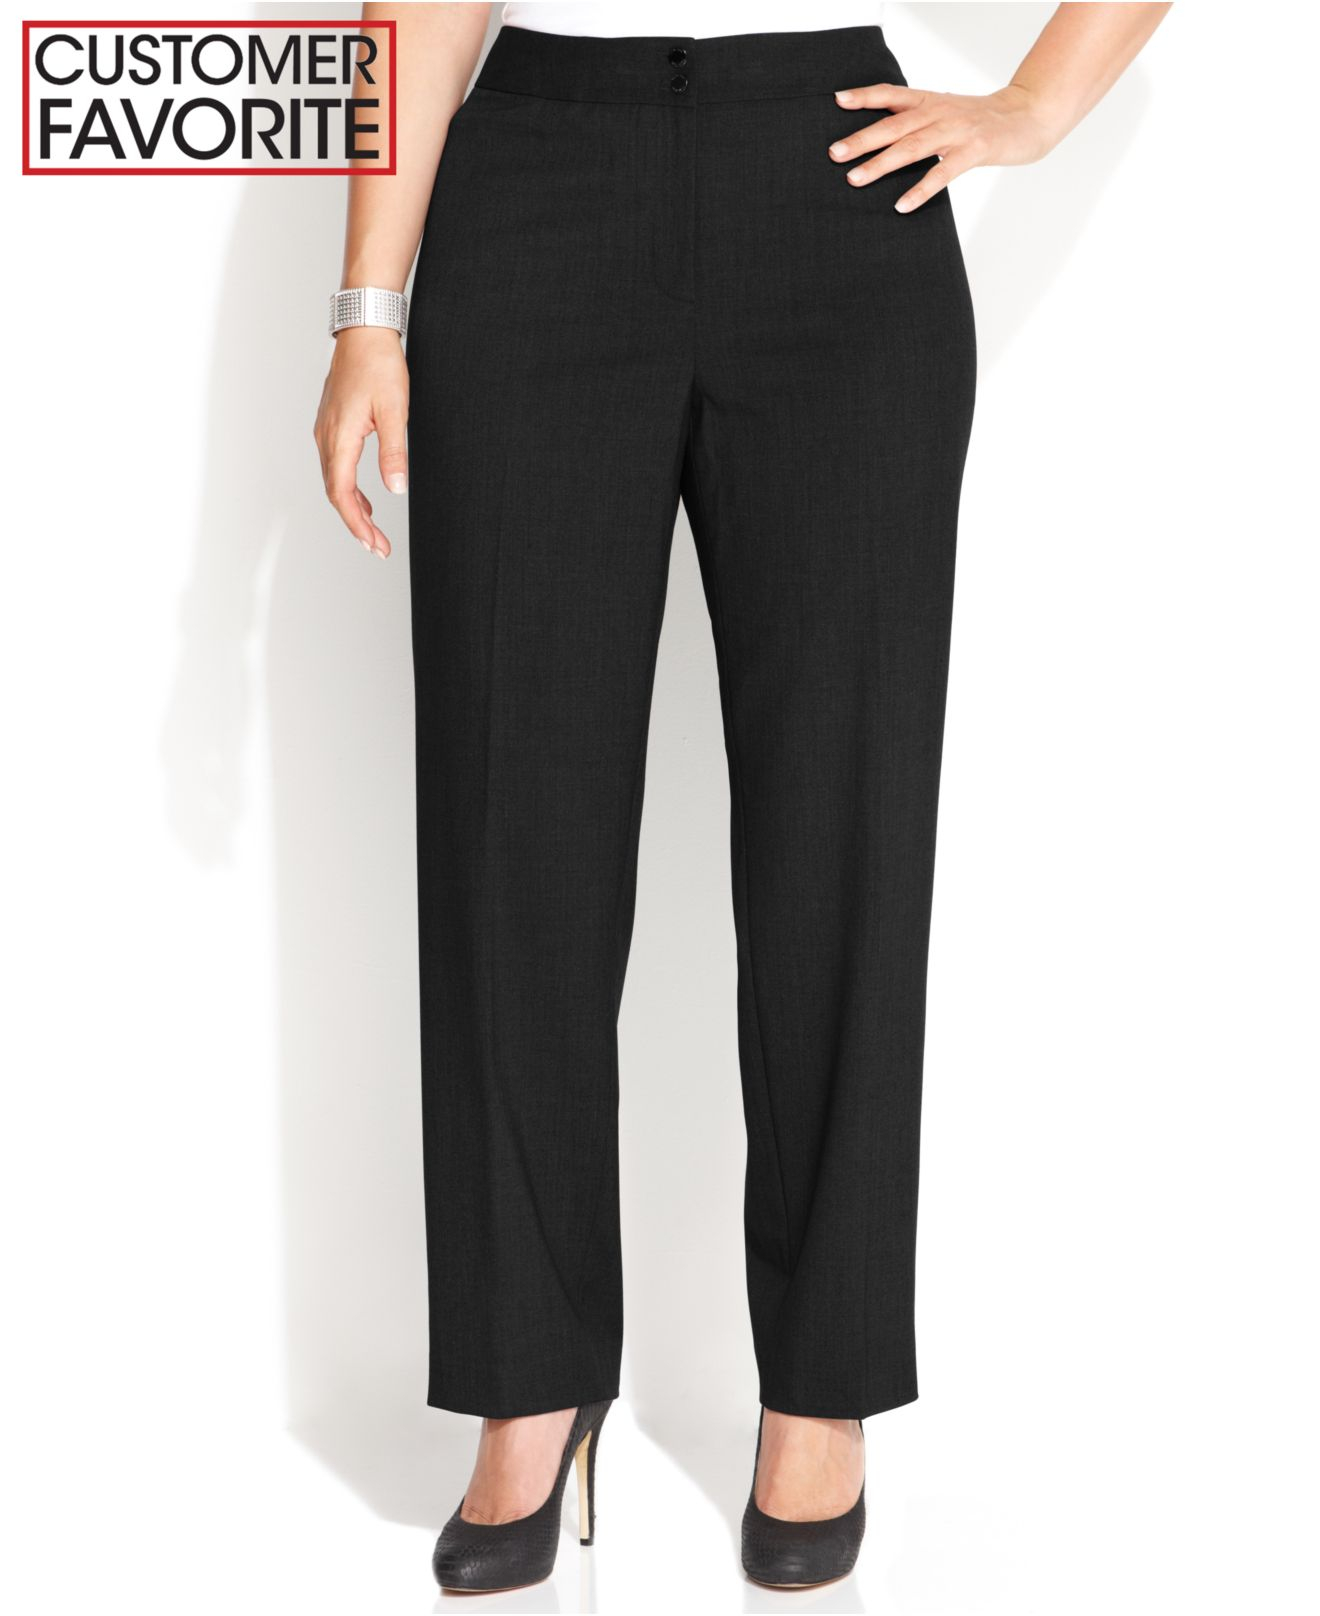 Plus Size Dress Black Pants 55